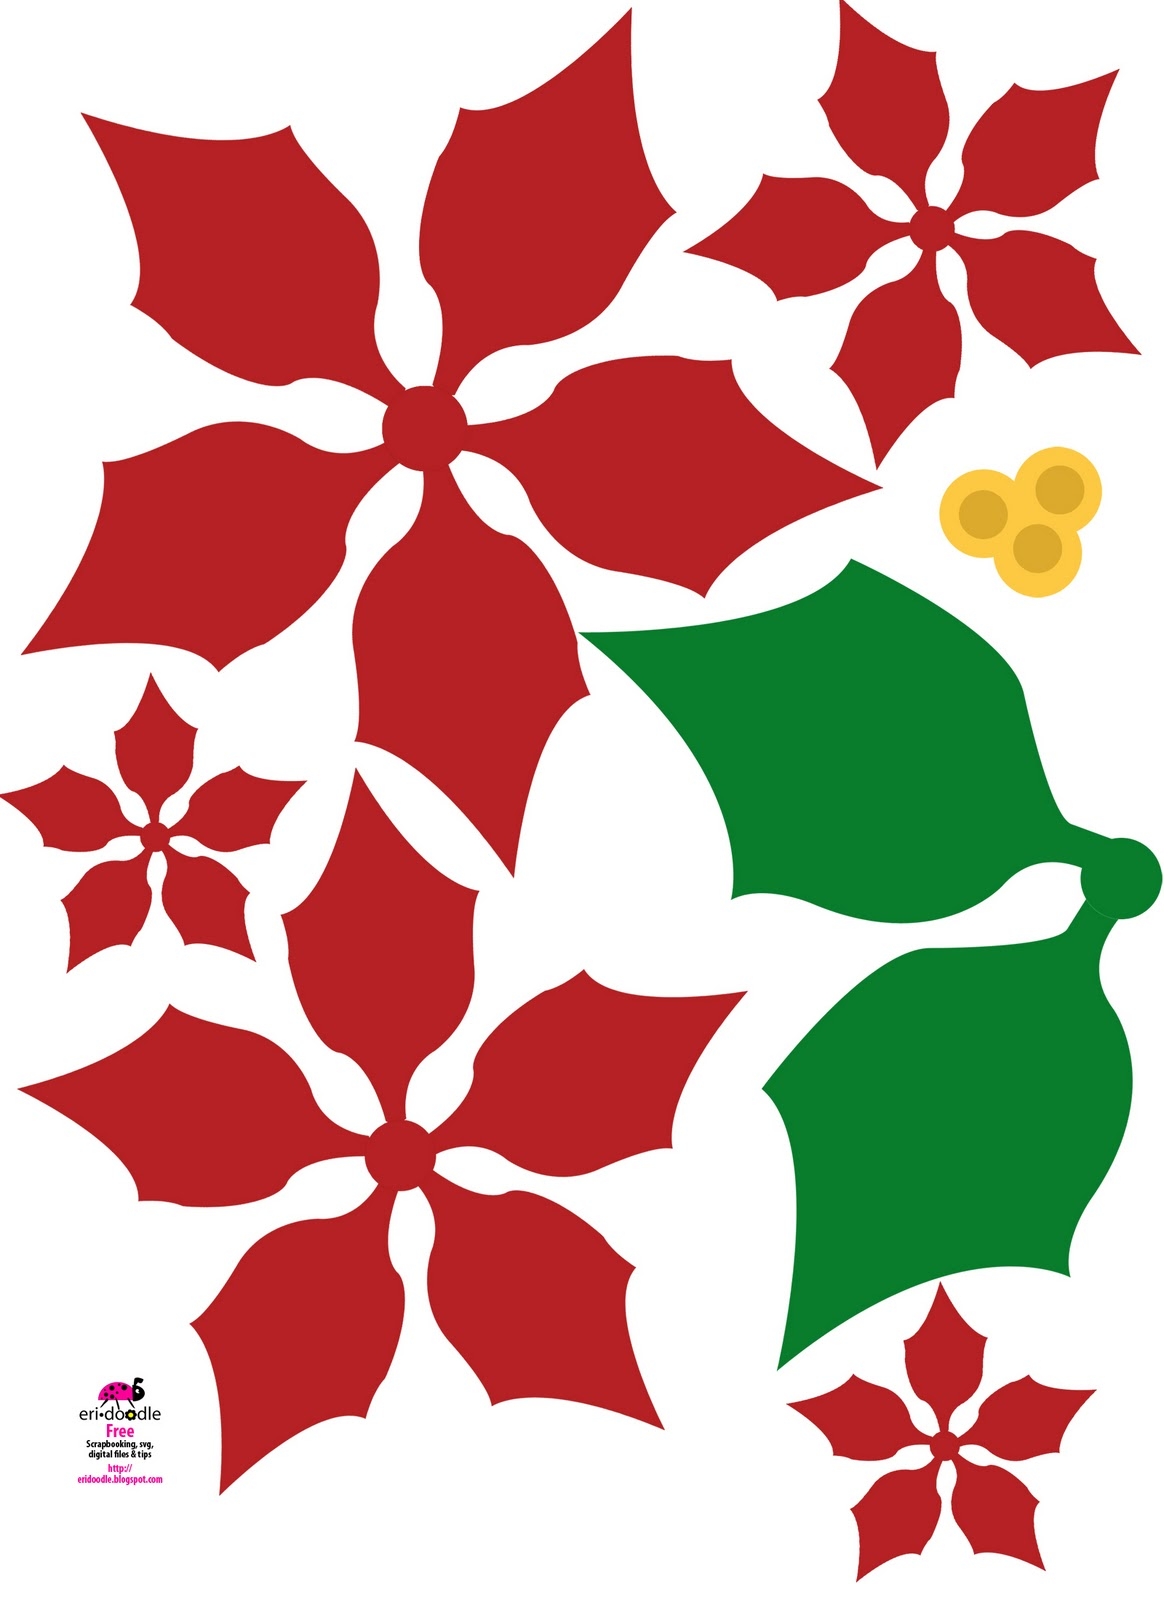 Eri doodle designs and creations make a paper christmas flower paper poinsettia christmas flower free download template mightylinksfo